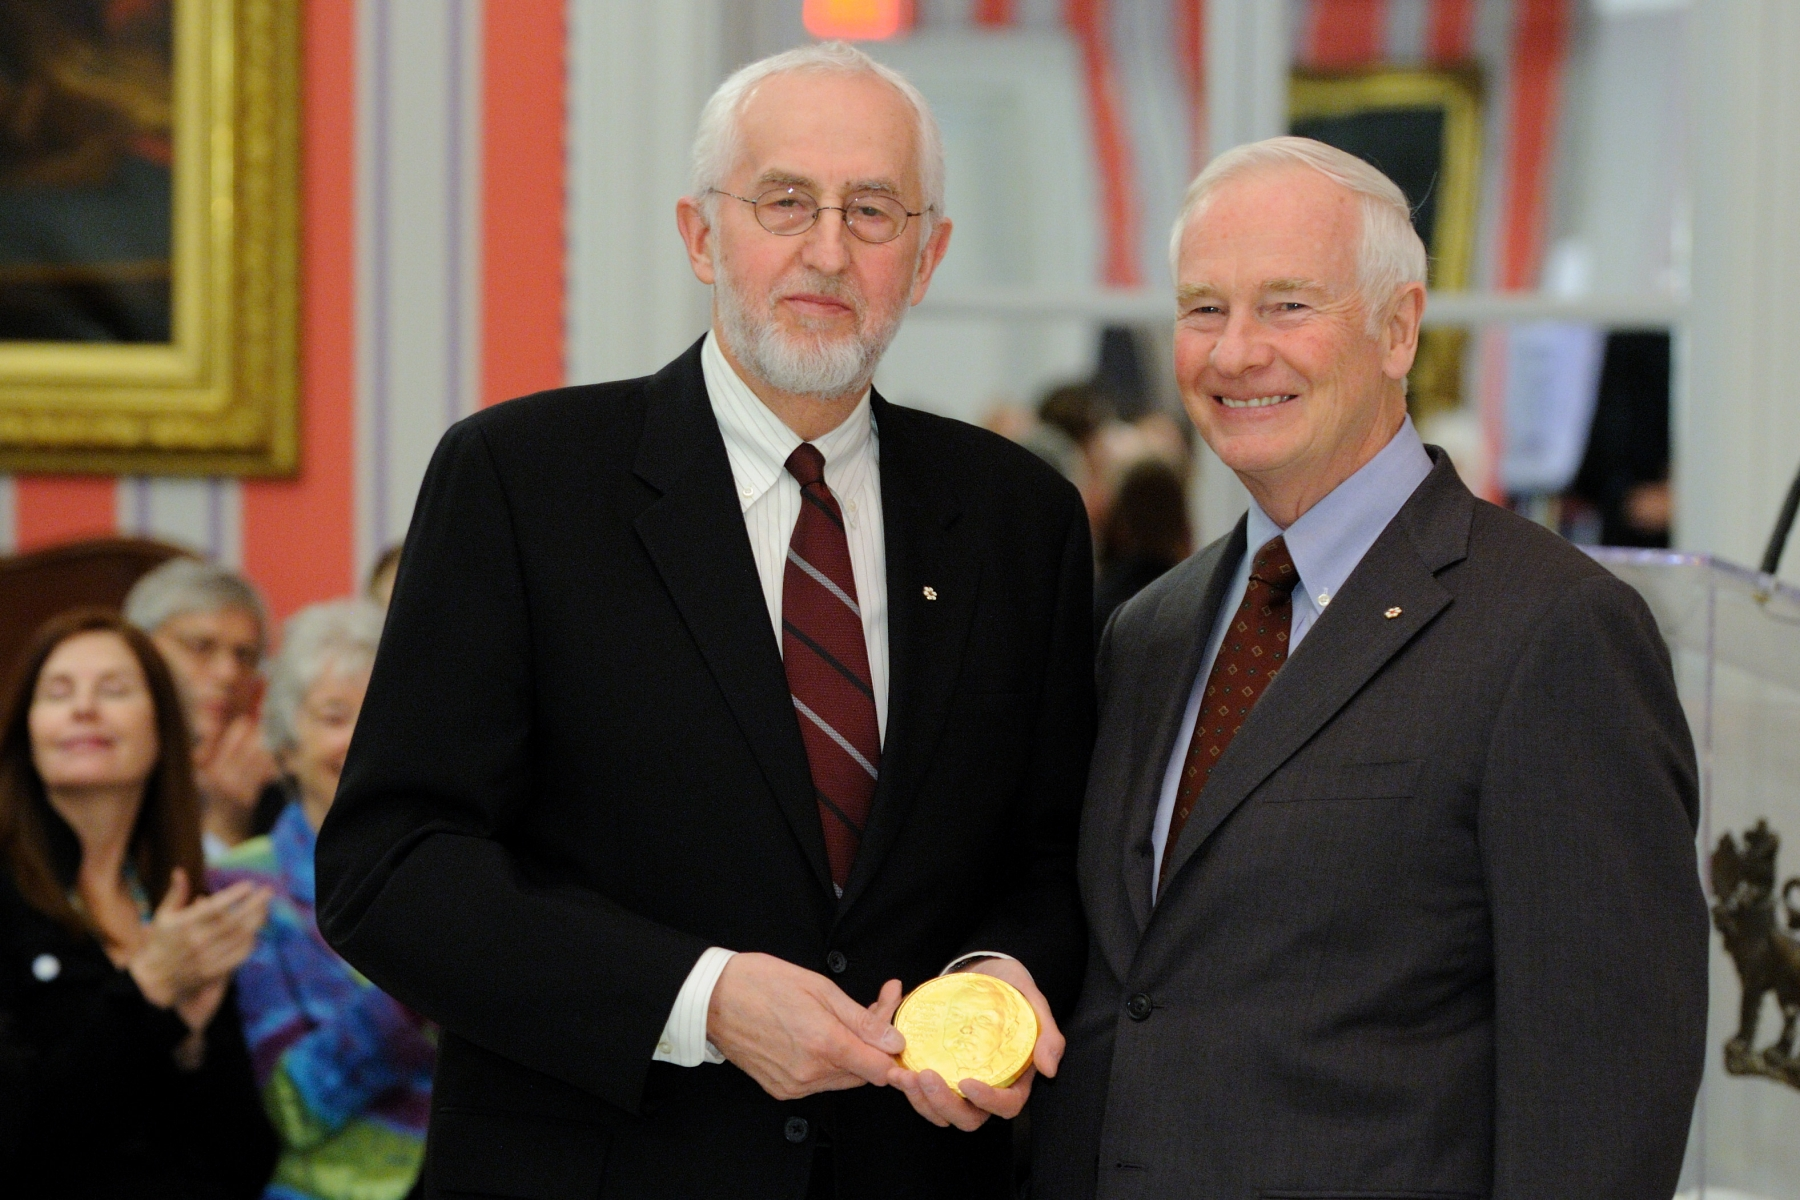 A jury of eminent Canadians selects the recipient of this honour. The medal is awarded by the United Nations Association in Canada (UNA-Canada), a registered charity founded in 1946, with a mandate to educate and engage Canadians in support of the United Nations and its critical issues, which have a global impact.